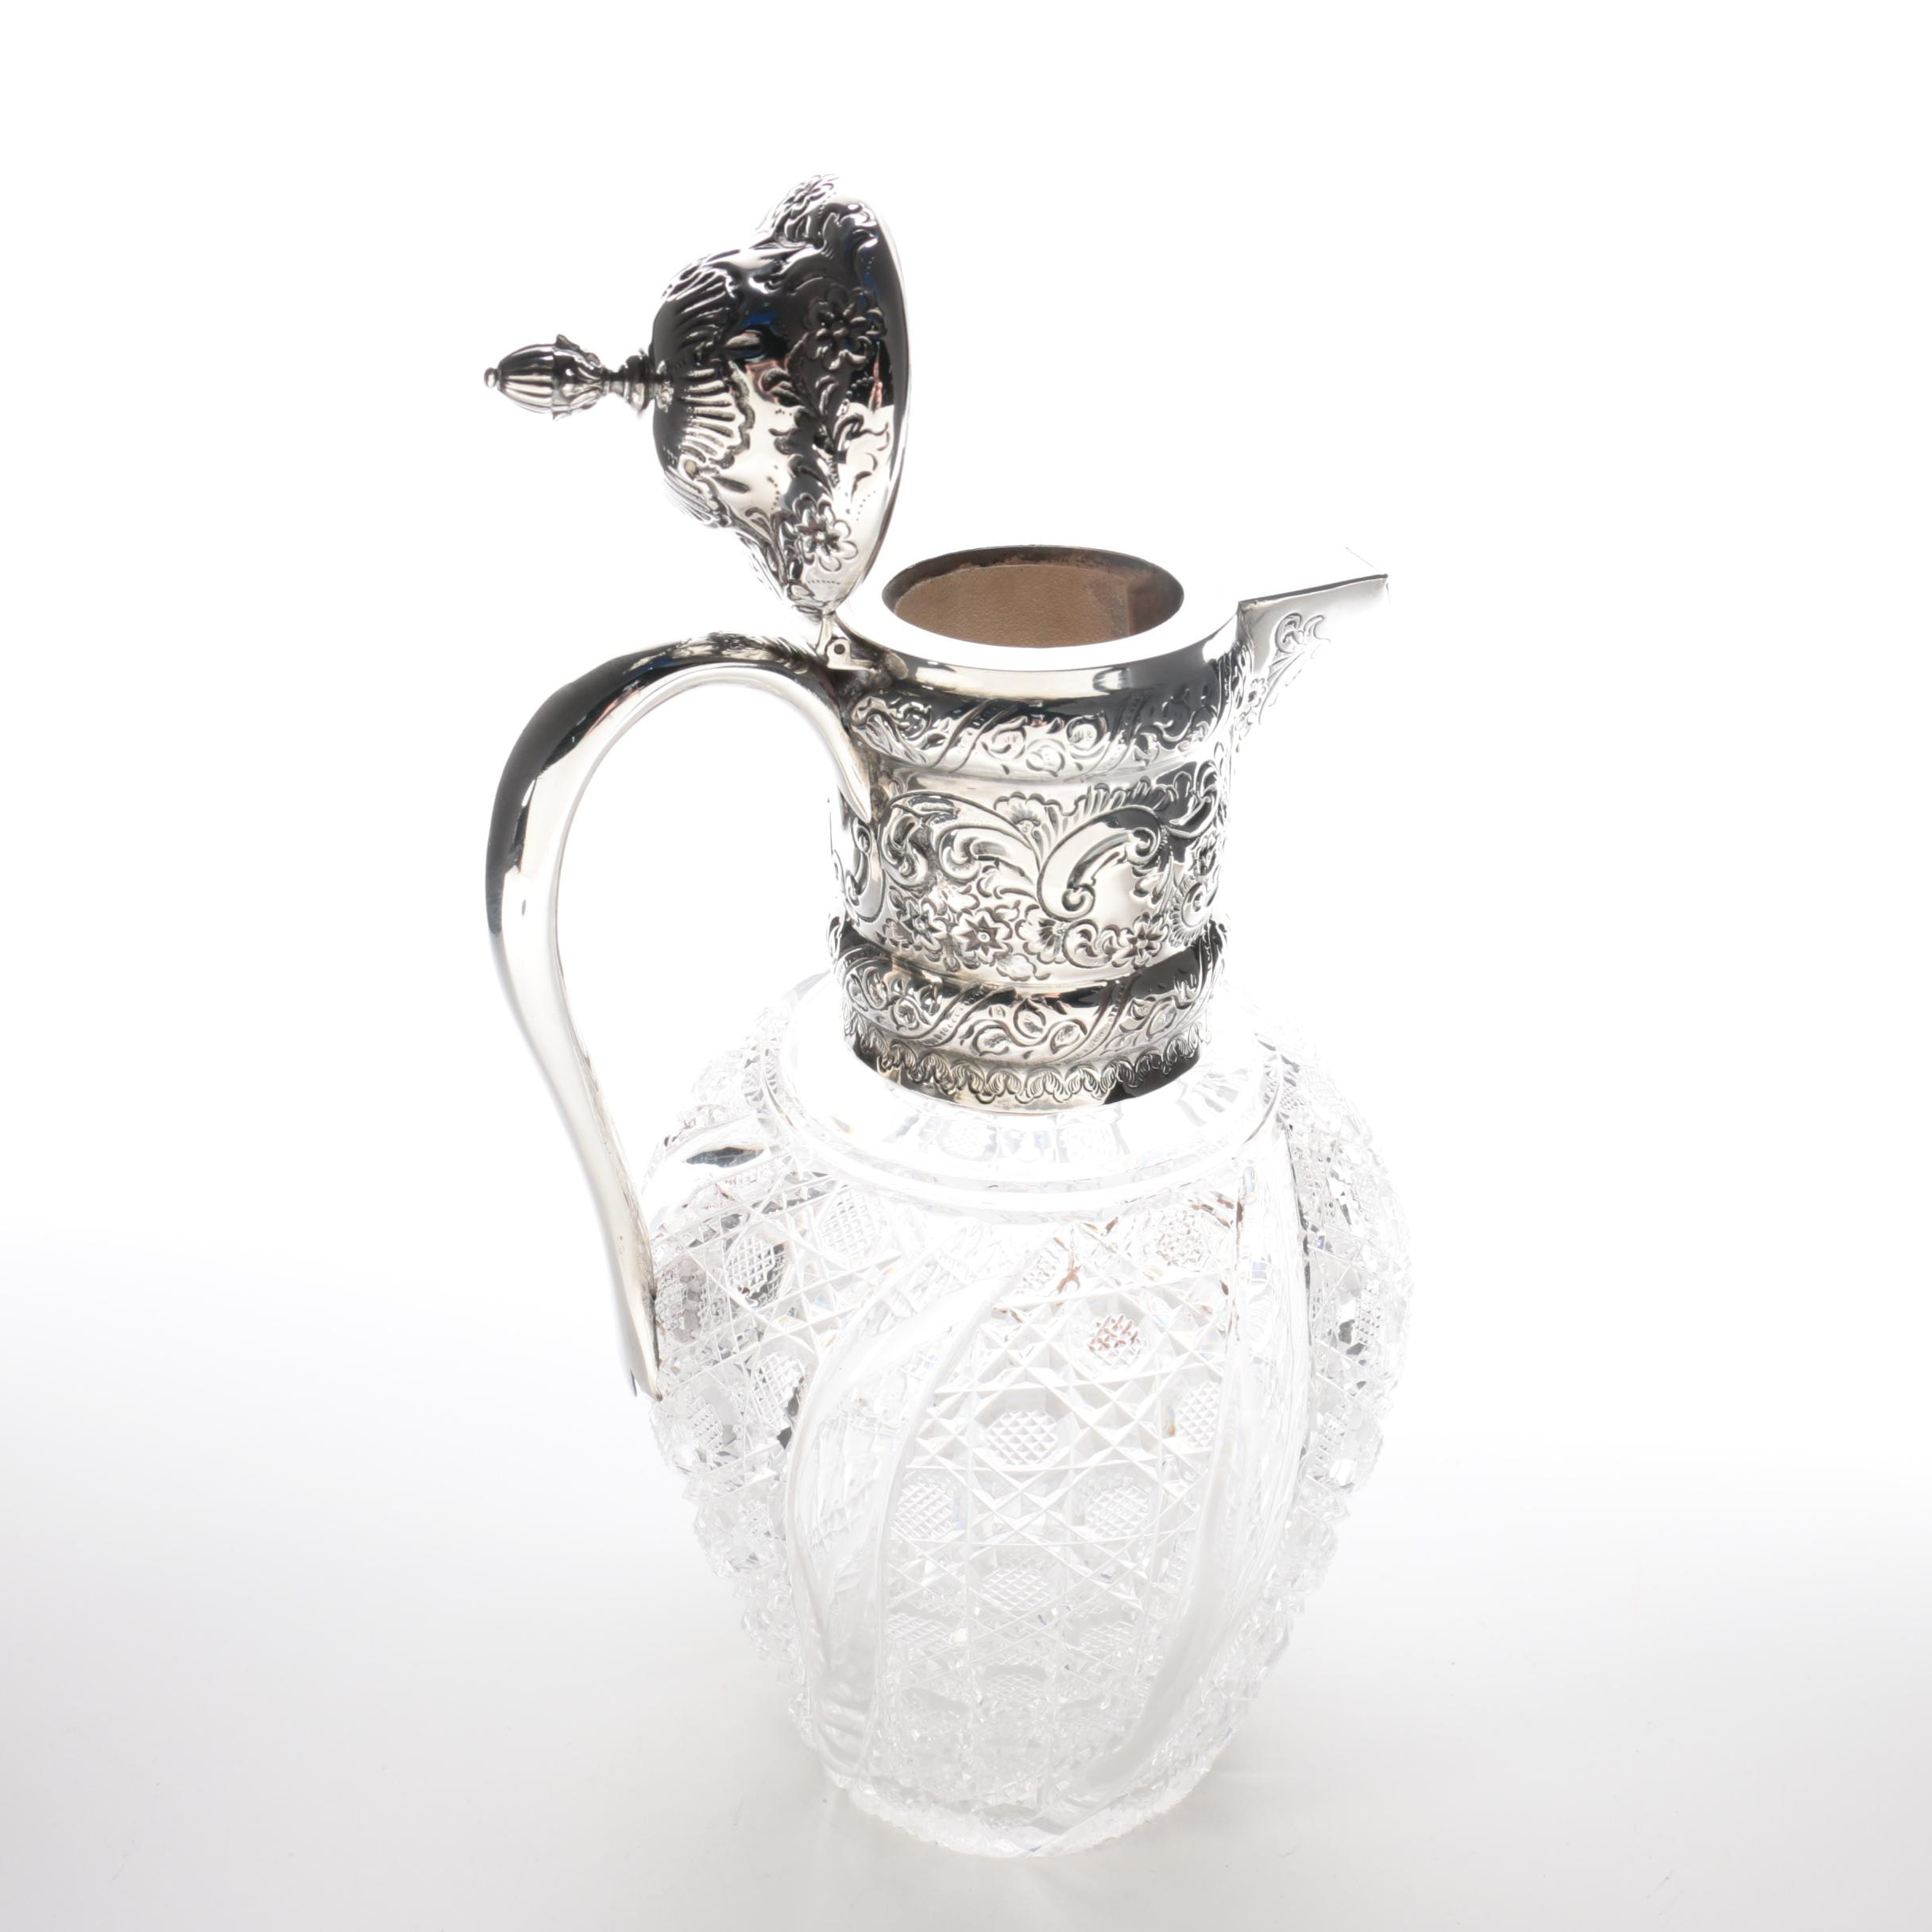 1892 Plante & Co. British Sterling Silver and Crystal Claret Wine Jug